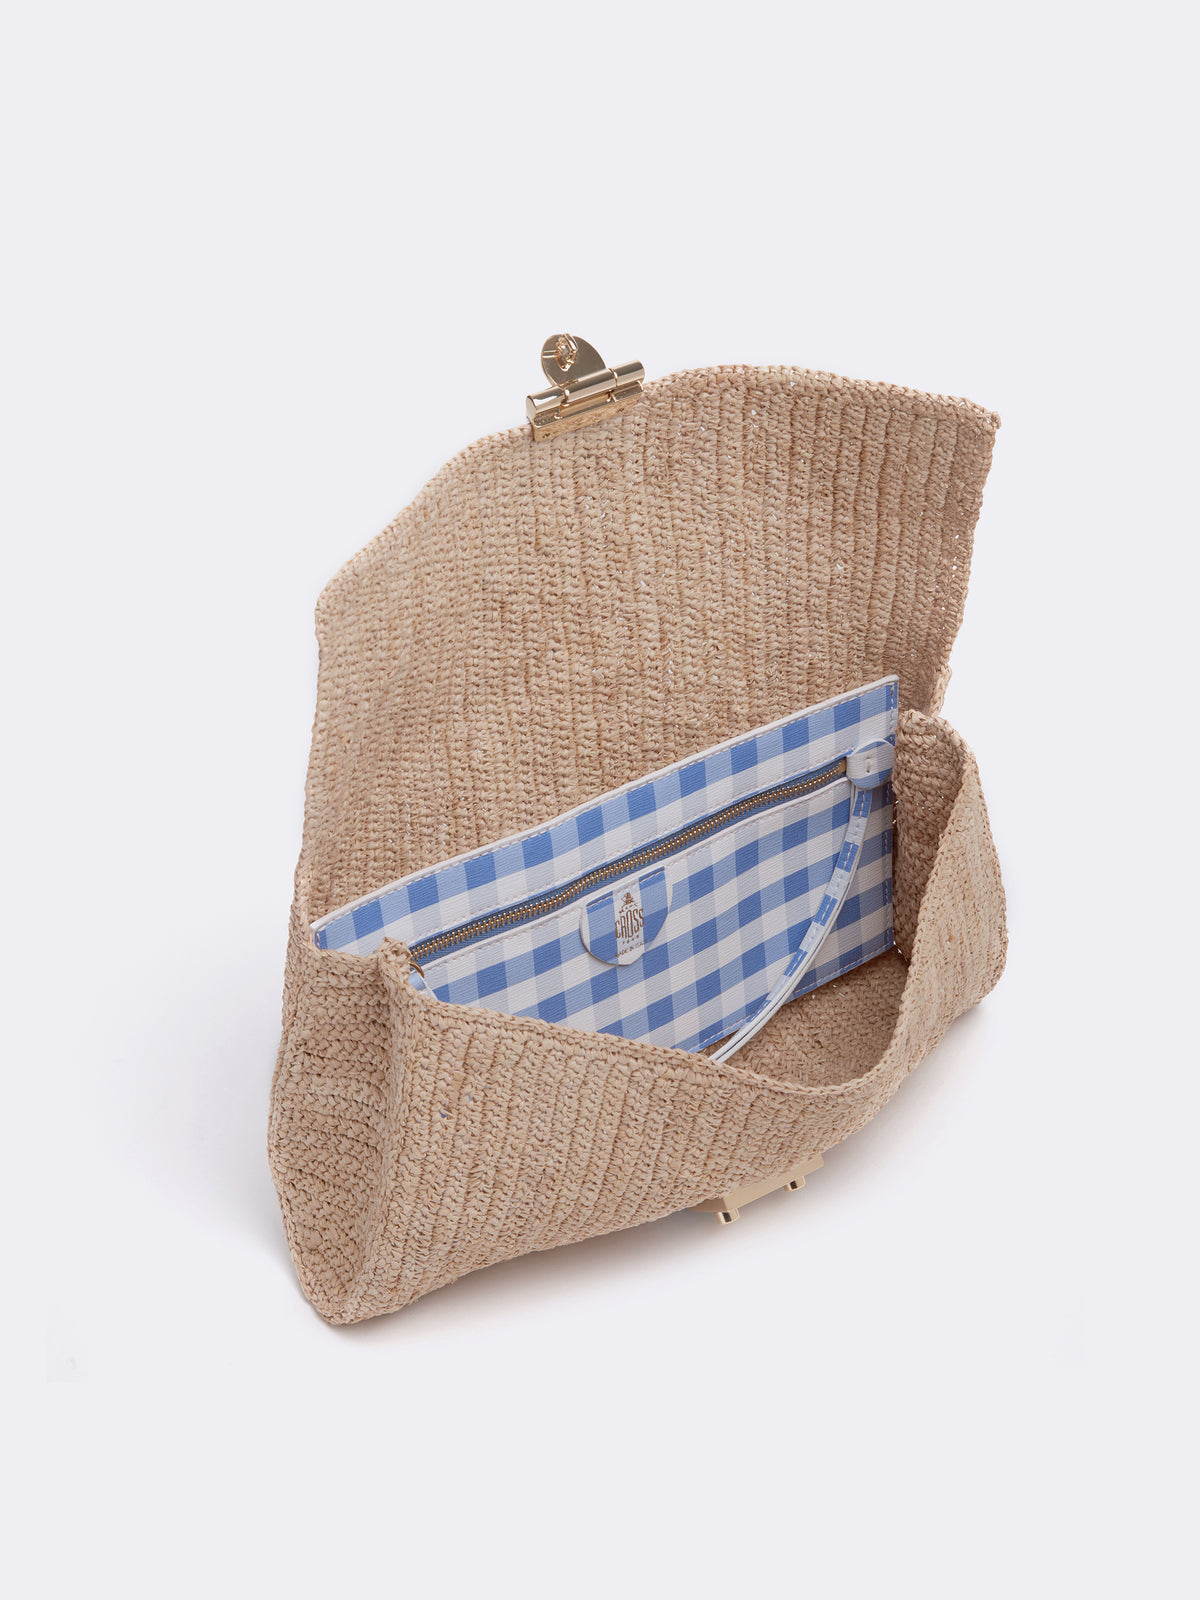 Mark Cross Sylvette Raffia & Leather Clutch Mini Franzi Gingham Regatta Blue / Natural Raffia Interior